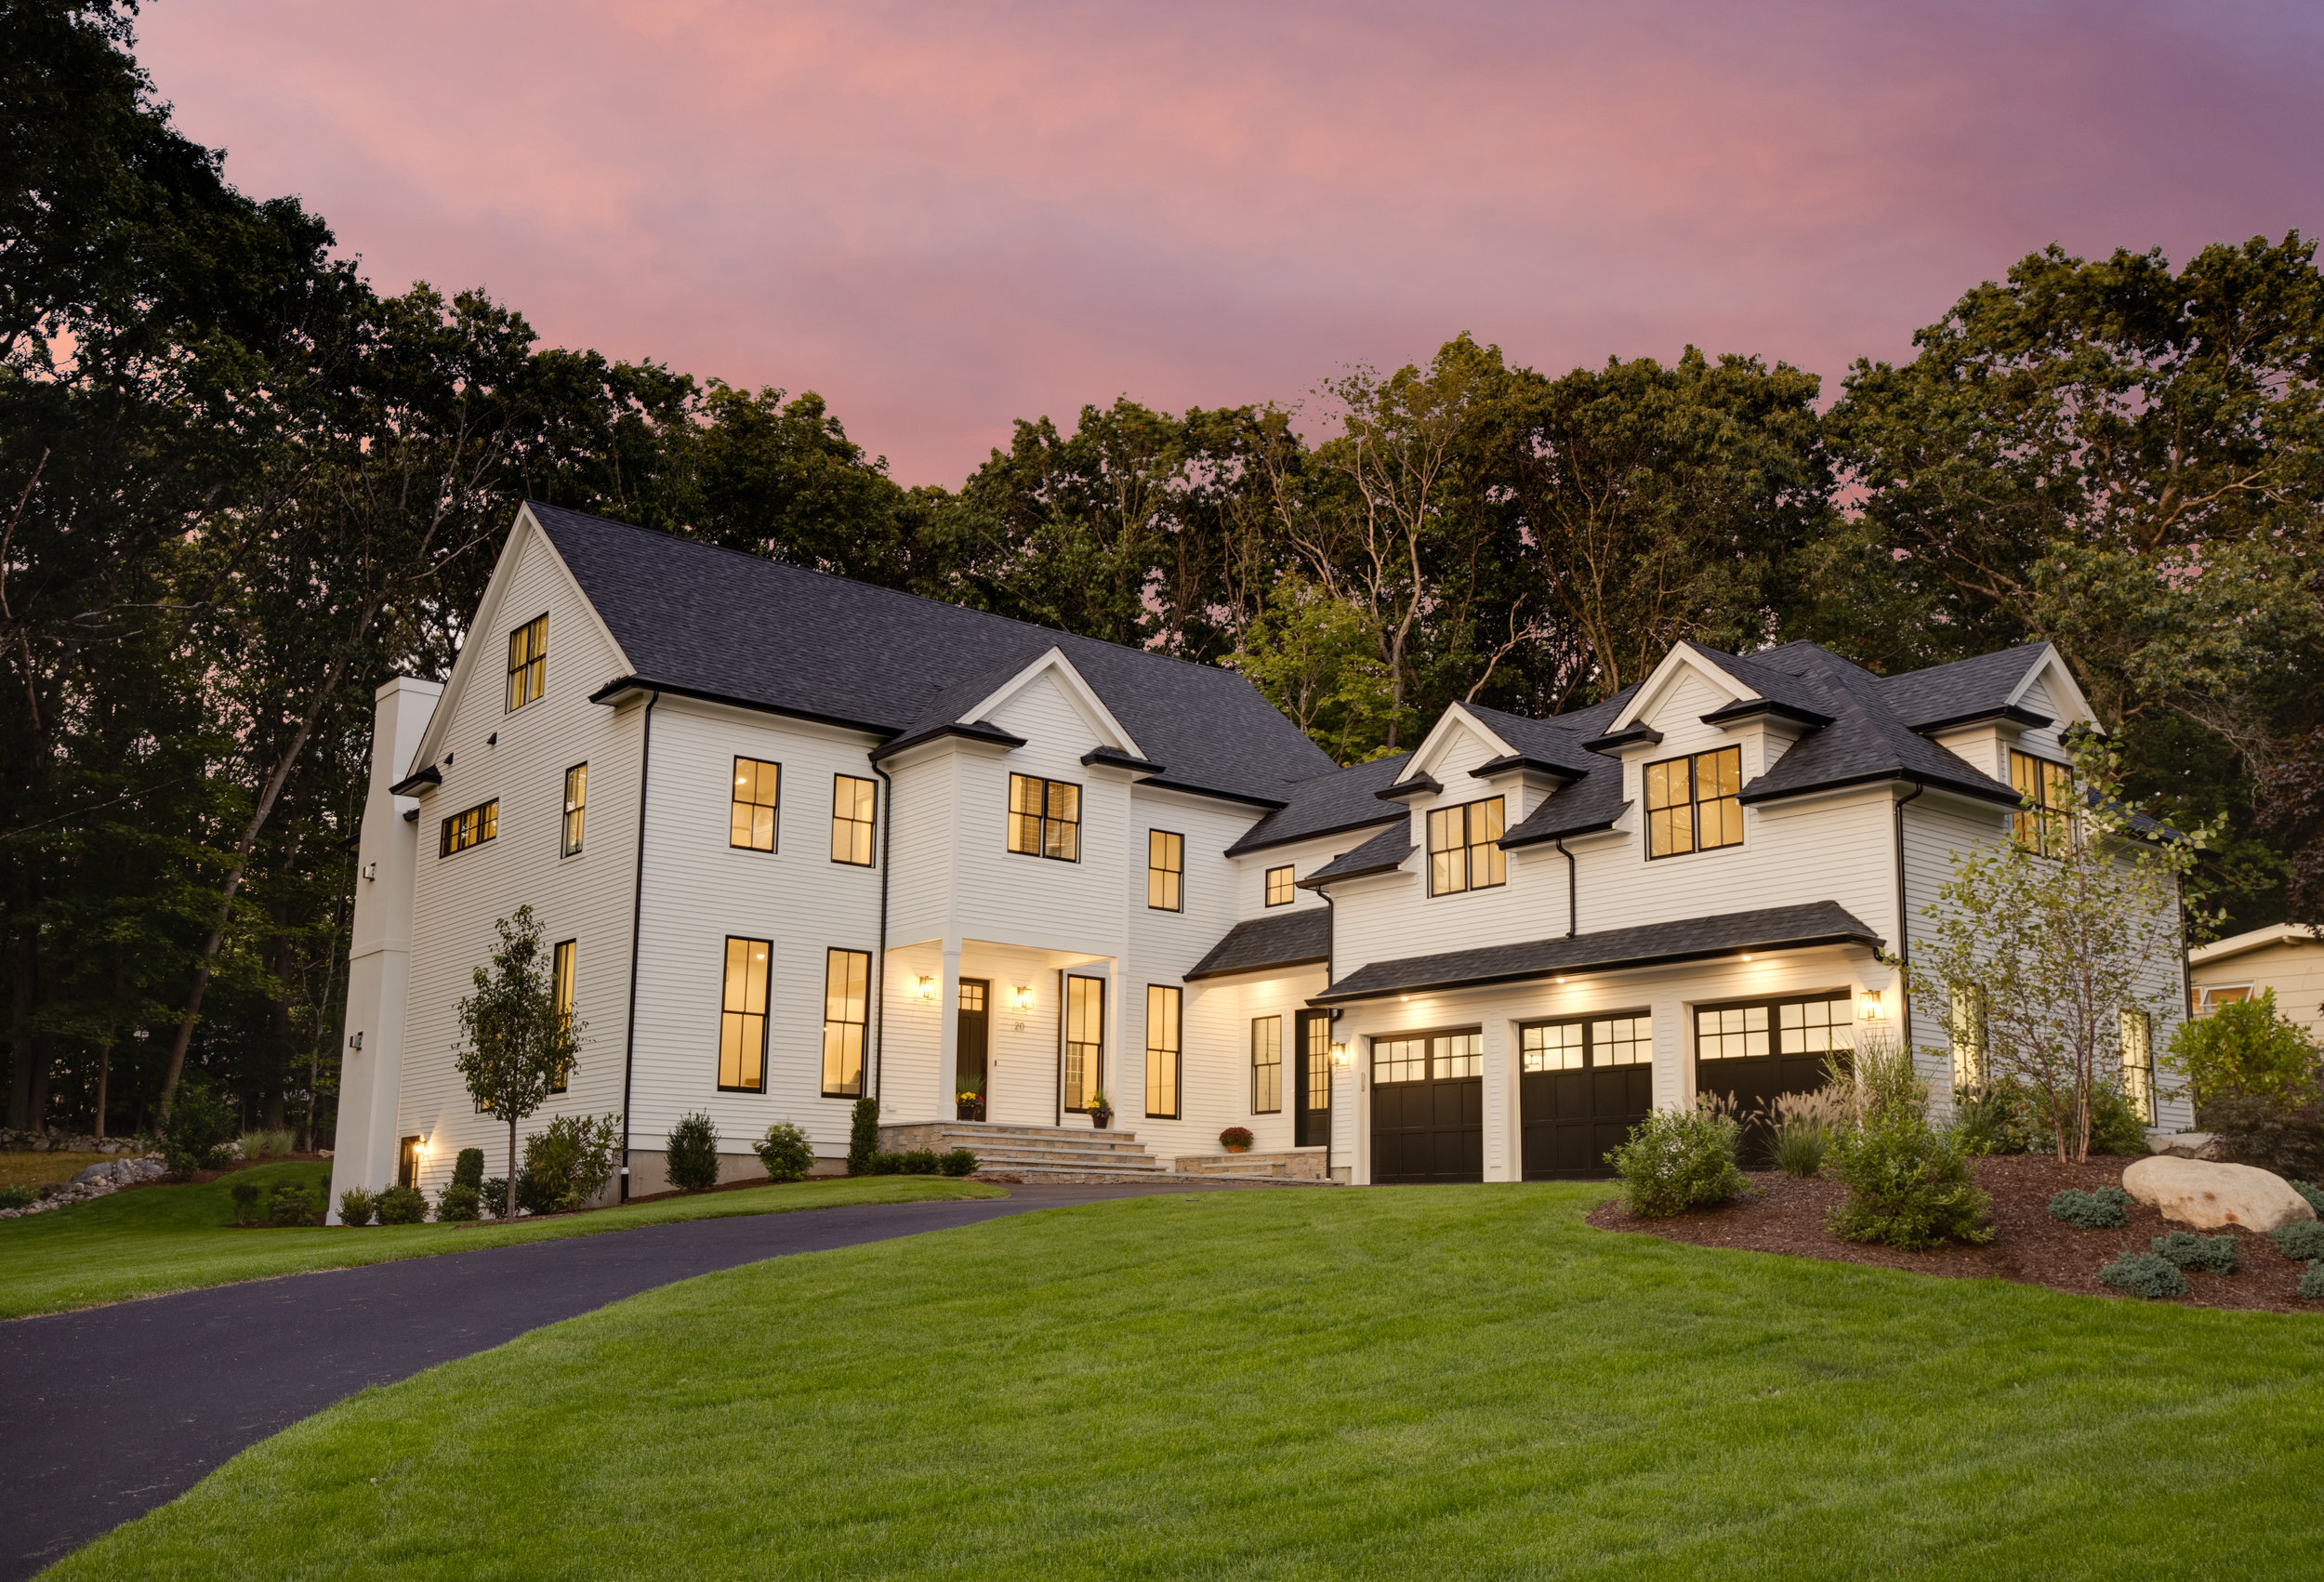 Featured Home of the Week - 20 Tyler Road - by Barons Custom HomesView Blog Post